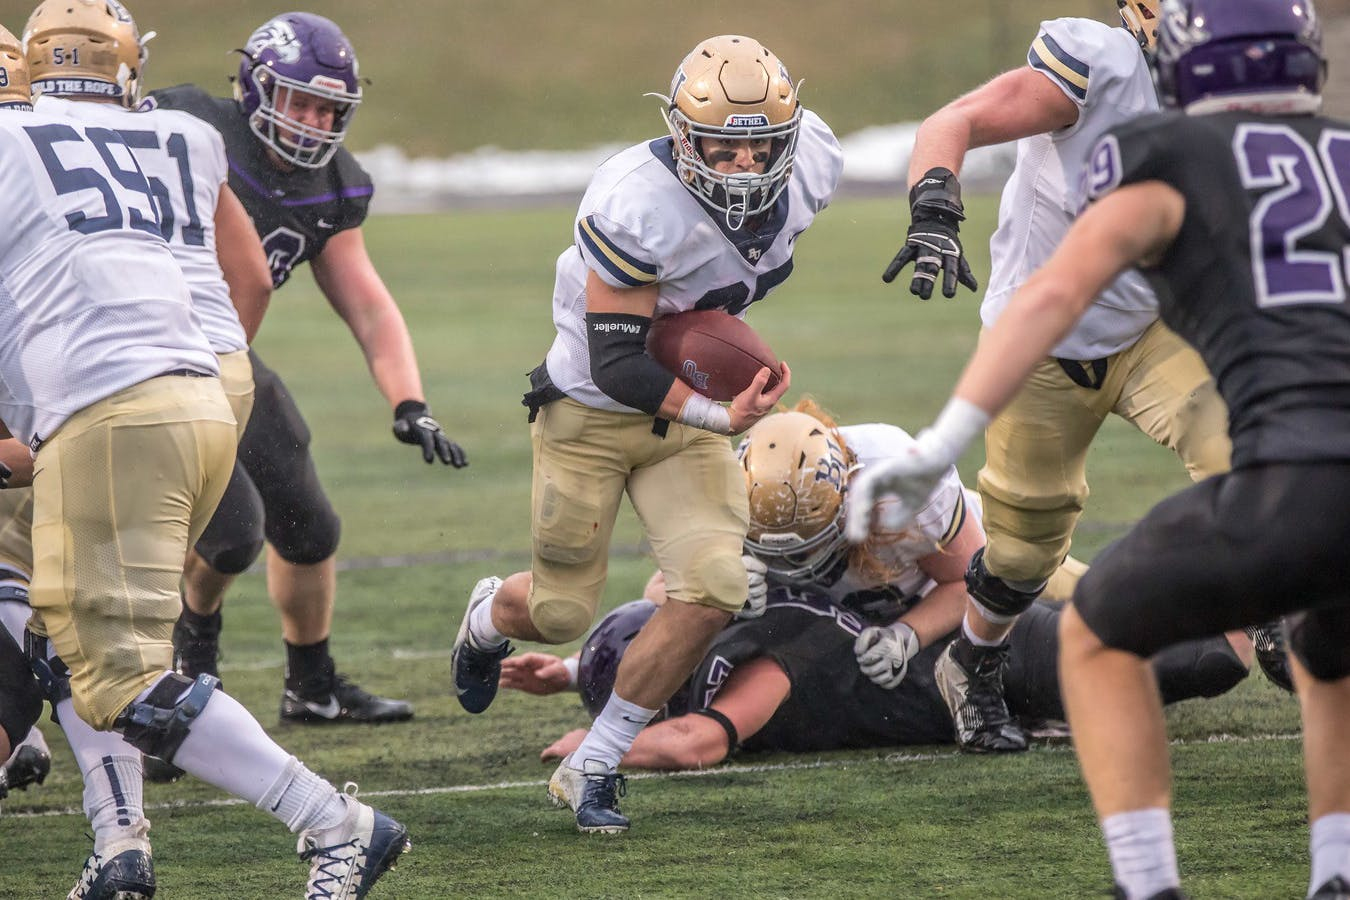 Miscues end Bethel's football season, but team found success in 2018